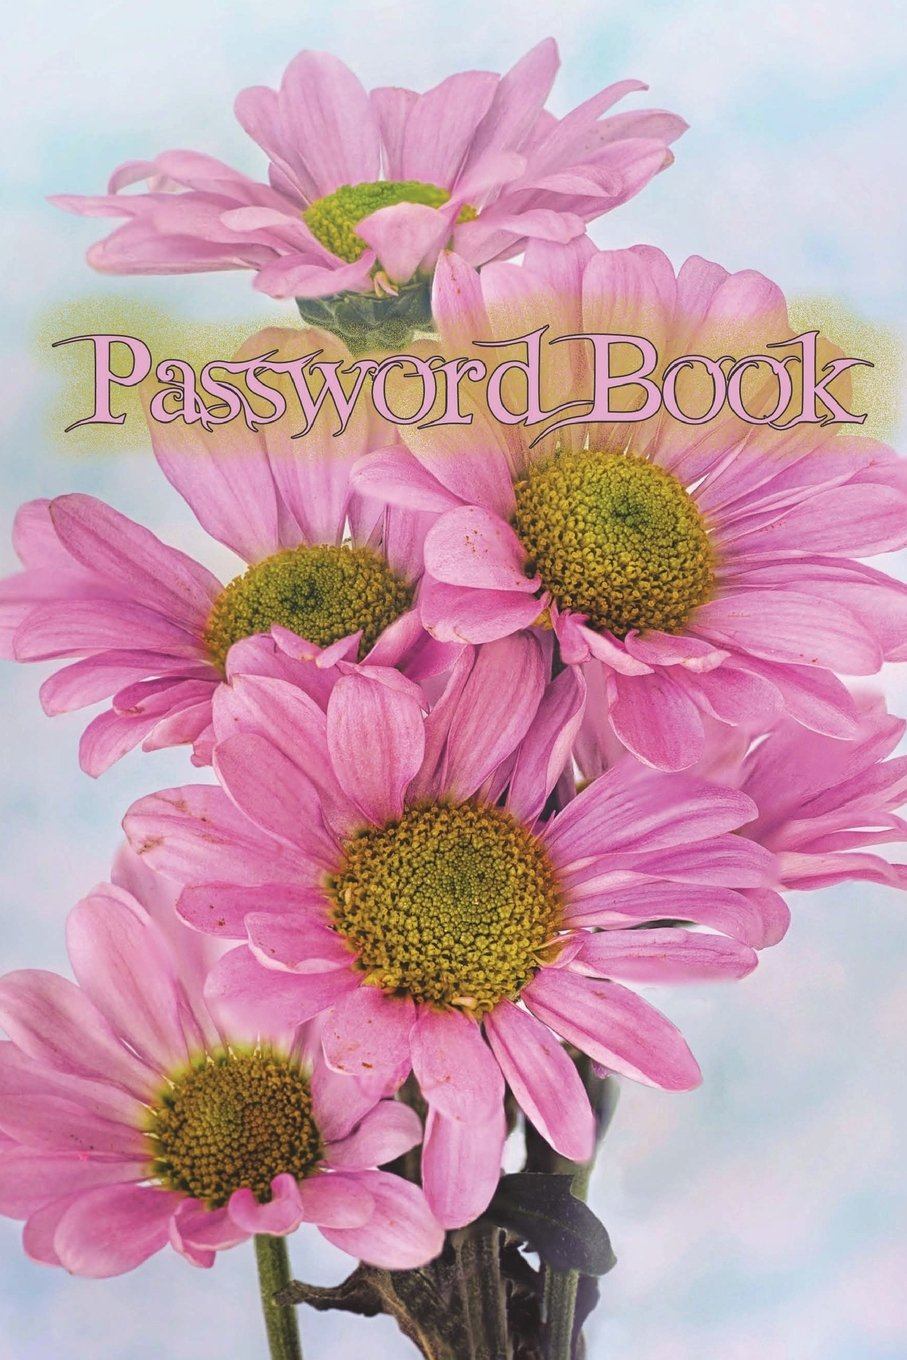 Read Online Password Book: Pink flower:Password Journal / Password Organizer / Password Keeper / Internet Usernames and Passwords (Volume 11) ebook